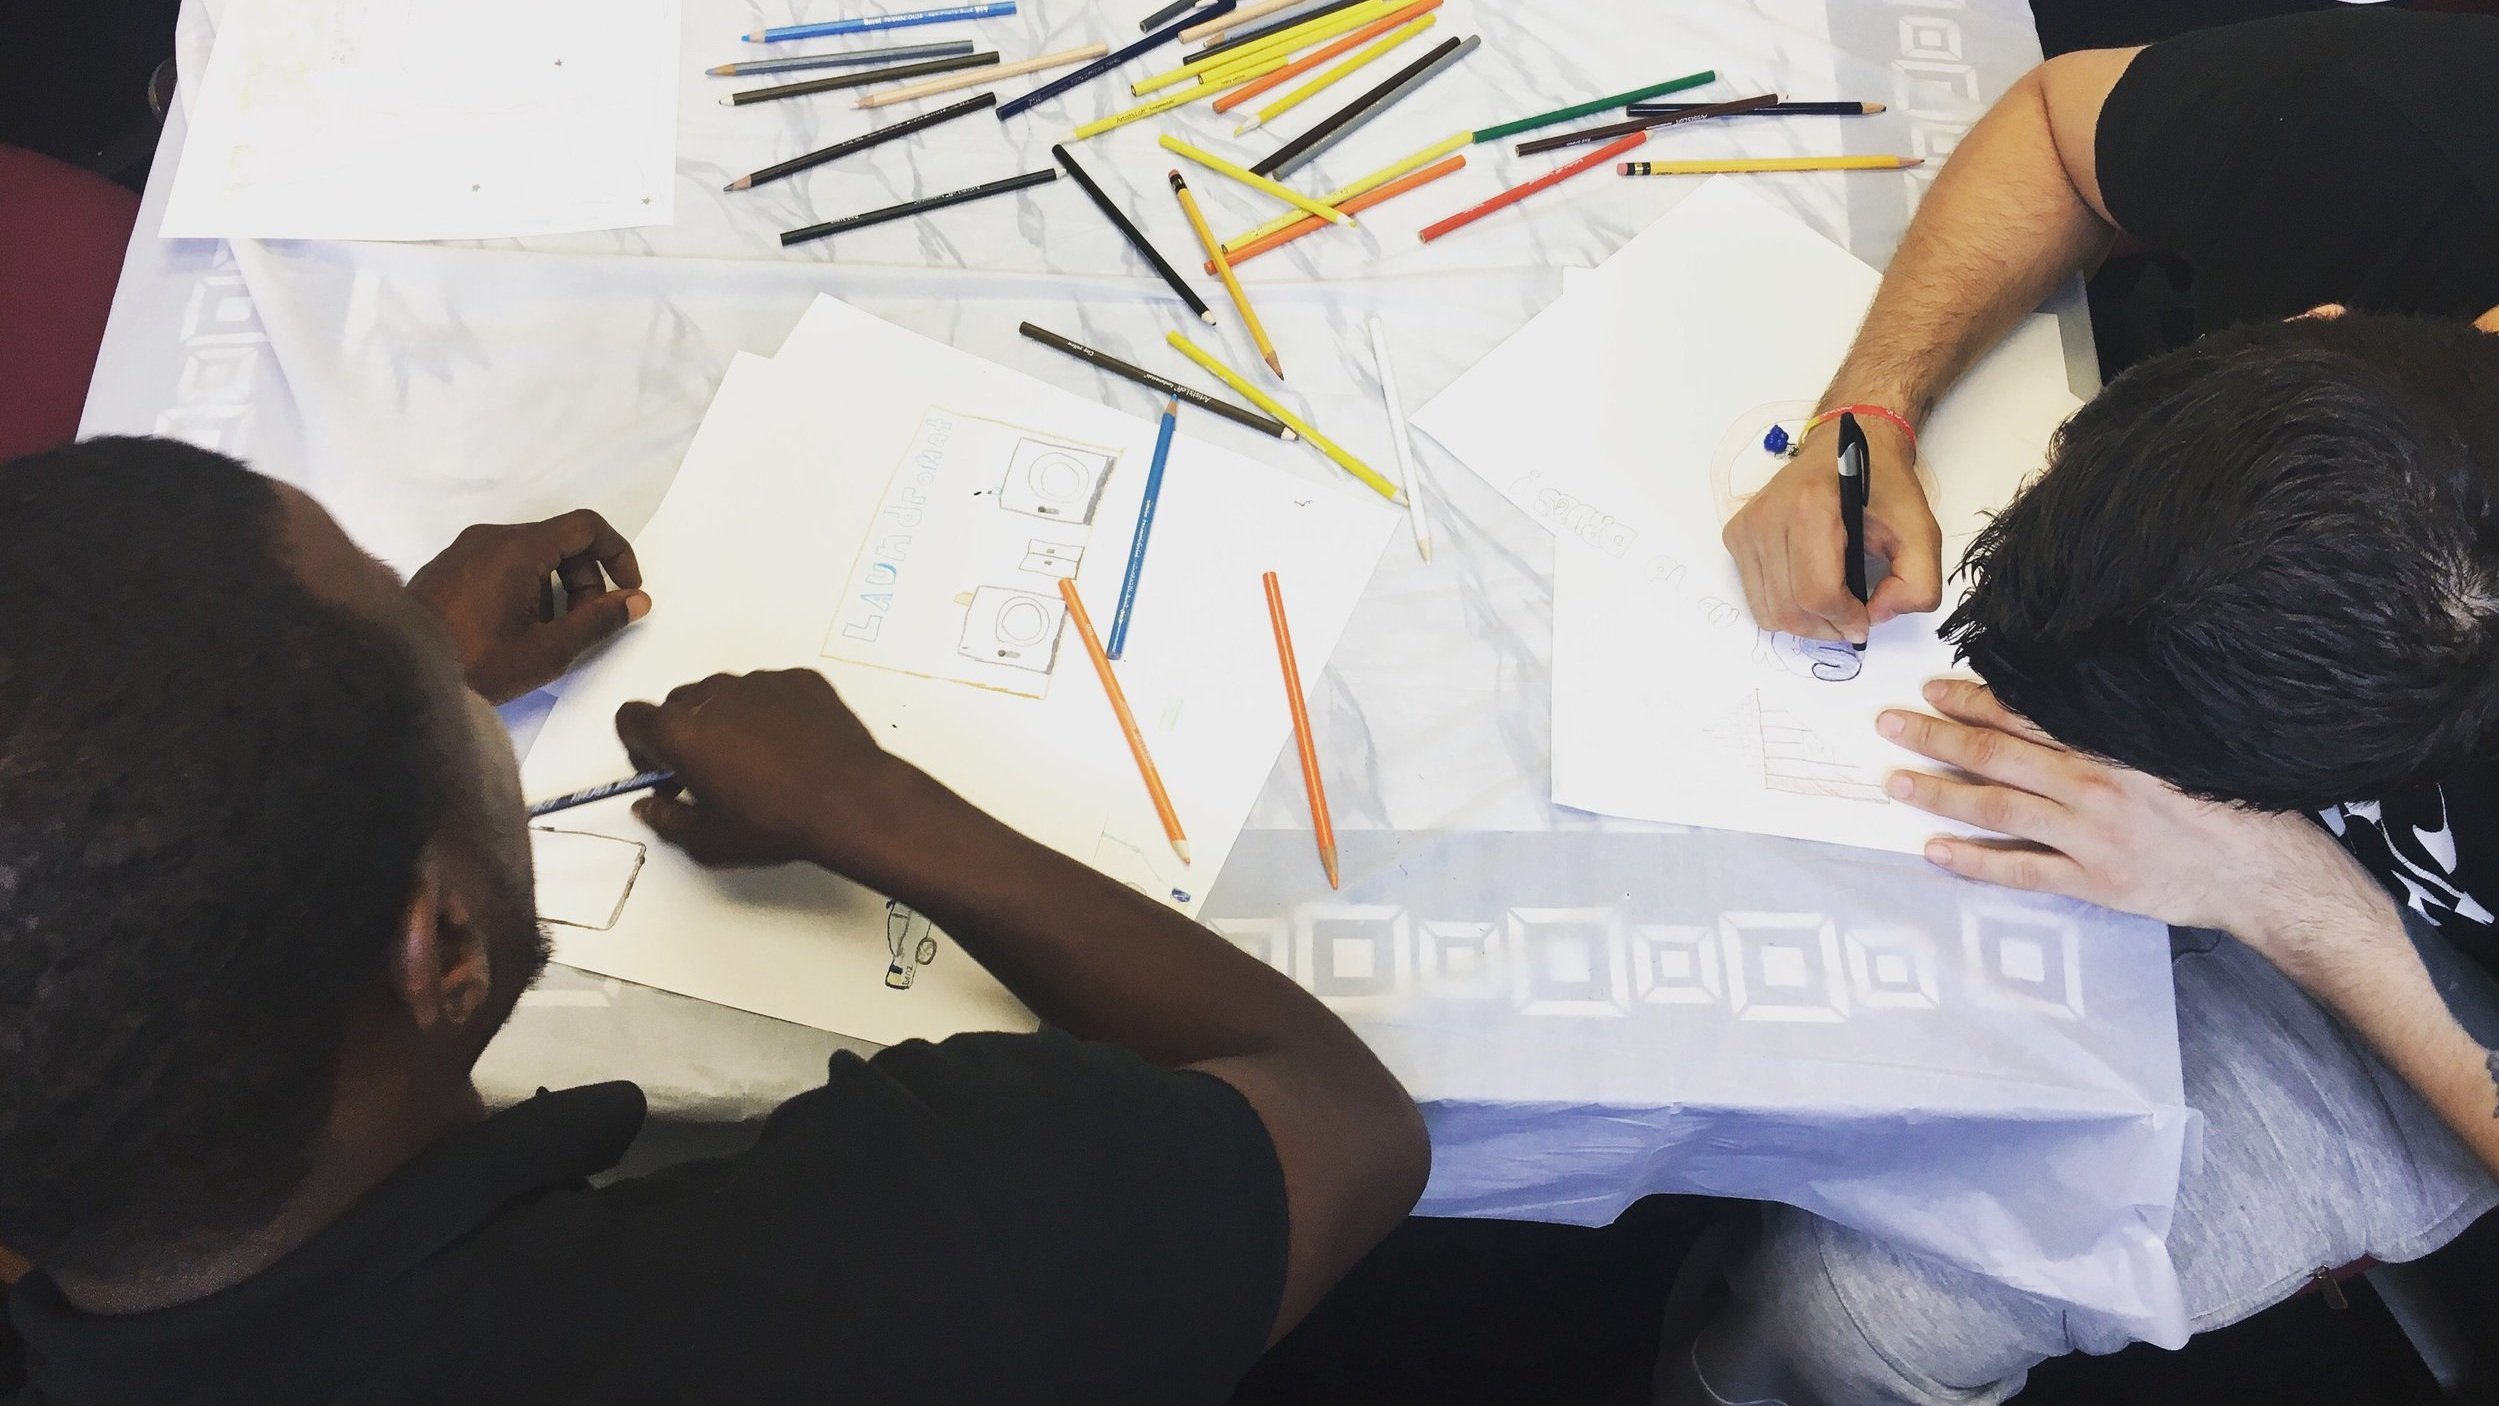 $1,000 - Funds 1 Year of Art Supplies for 1 Group